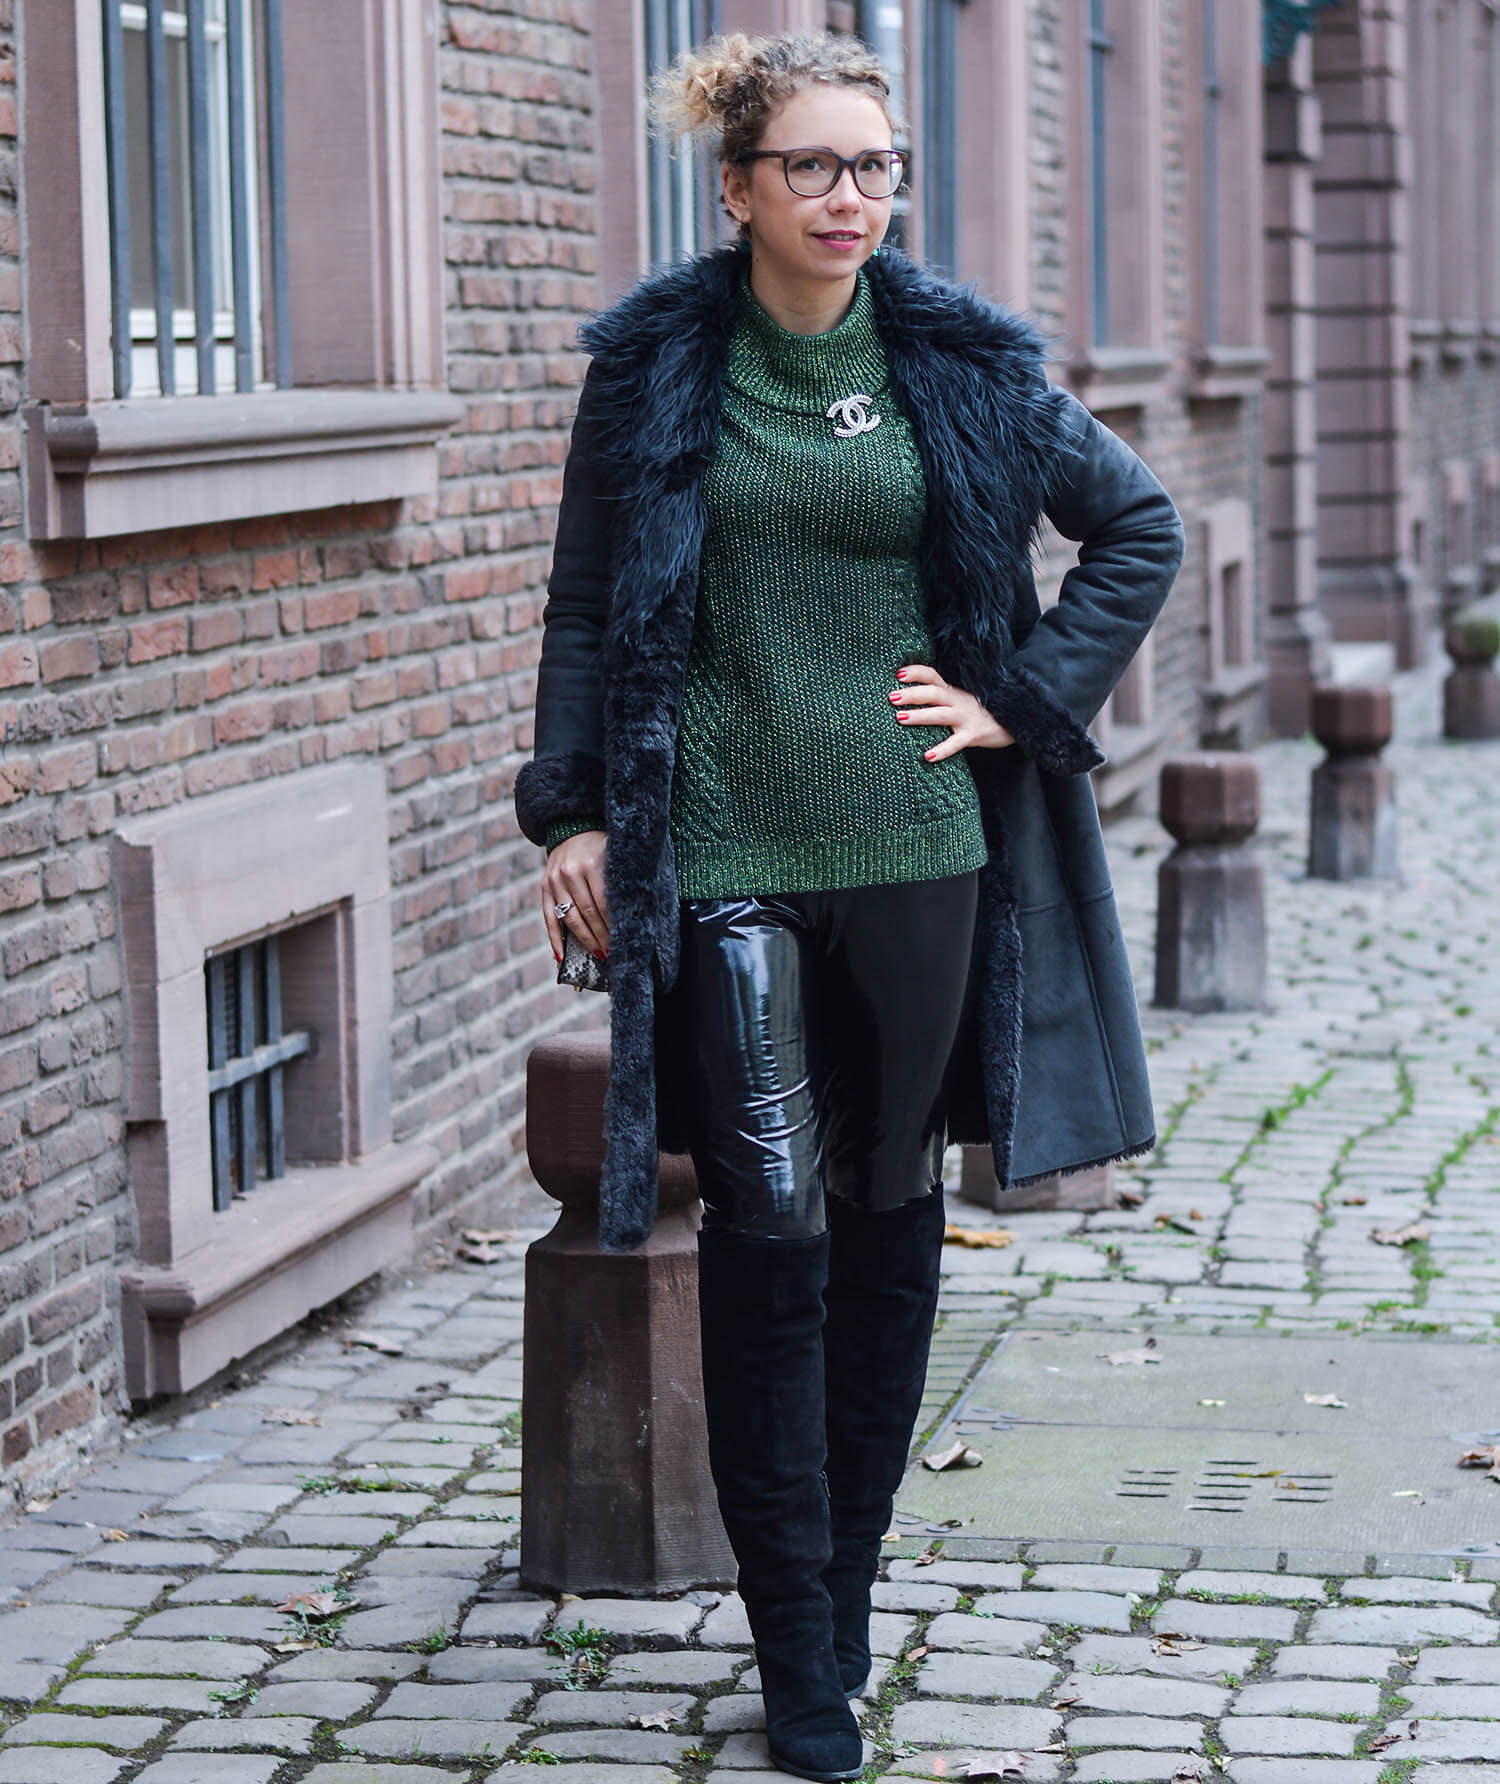 Kationette-fashionblogger-nrw-Outfit-Winter-Fashion-with-Green-Knit-Vinyl-Shearling-Coat-and-Overknees